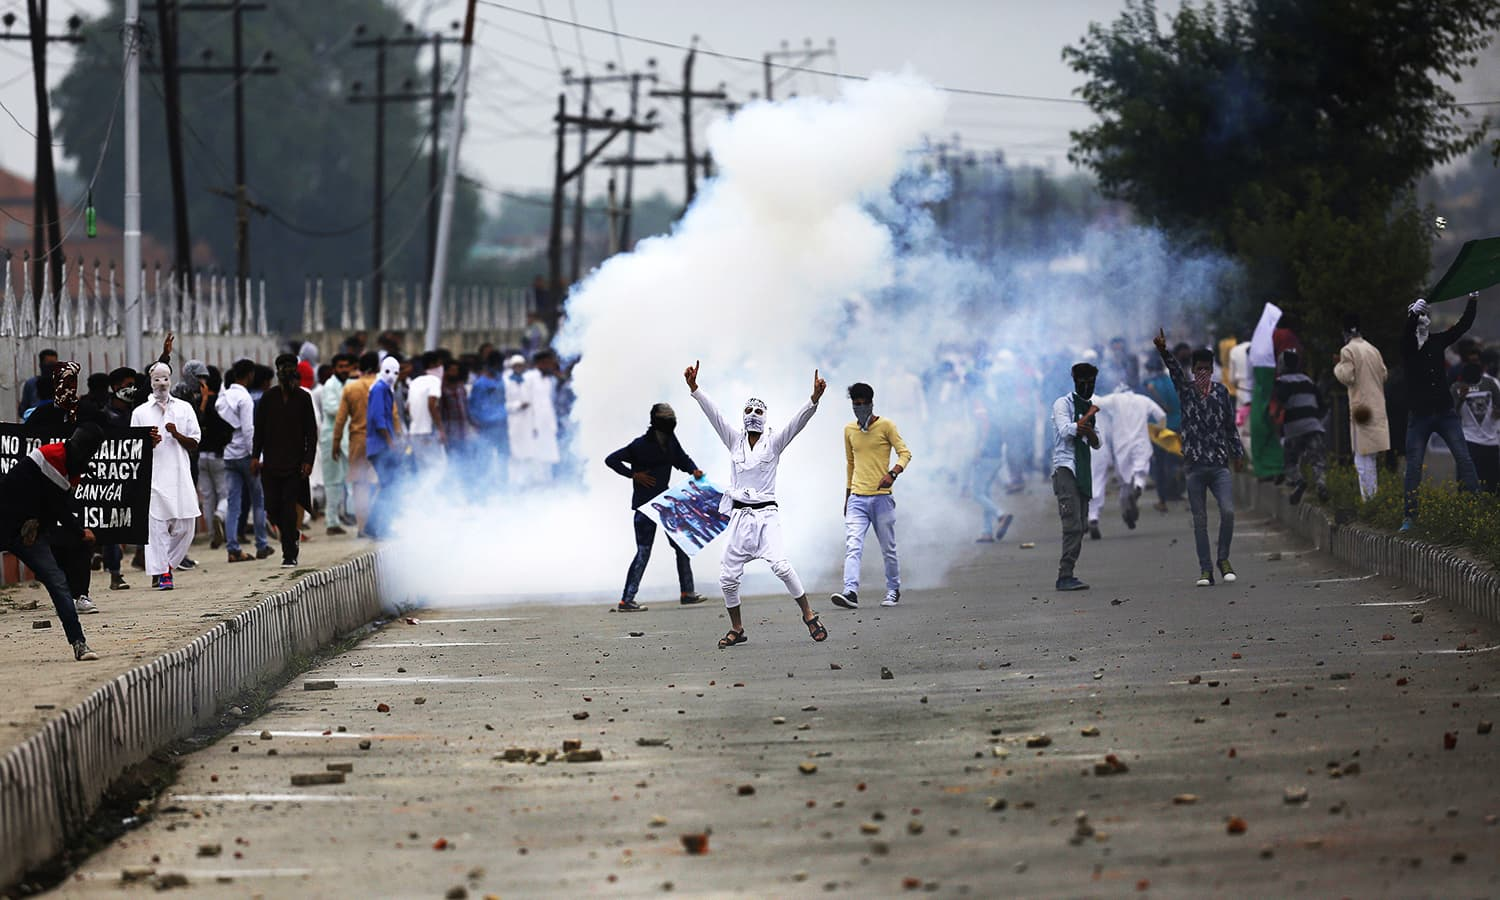 Protesters shout anti-India and pro-freedom slogans amid teargas smoke during a protest after Eidul Fitr prayers in Srinagar. ─ AP